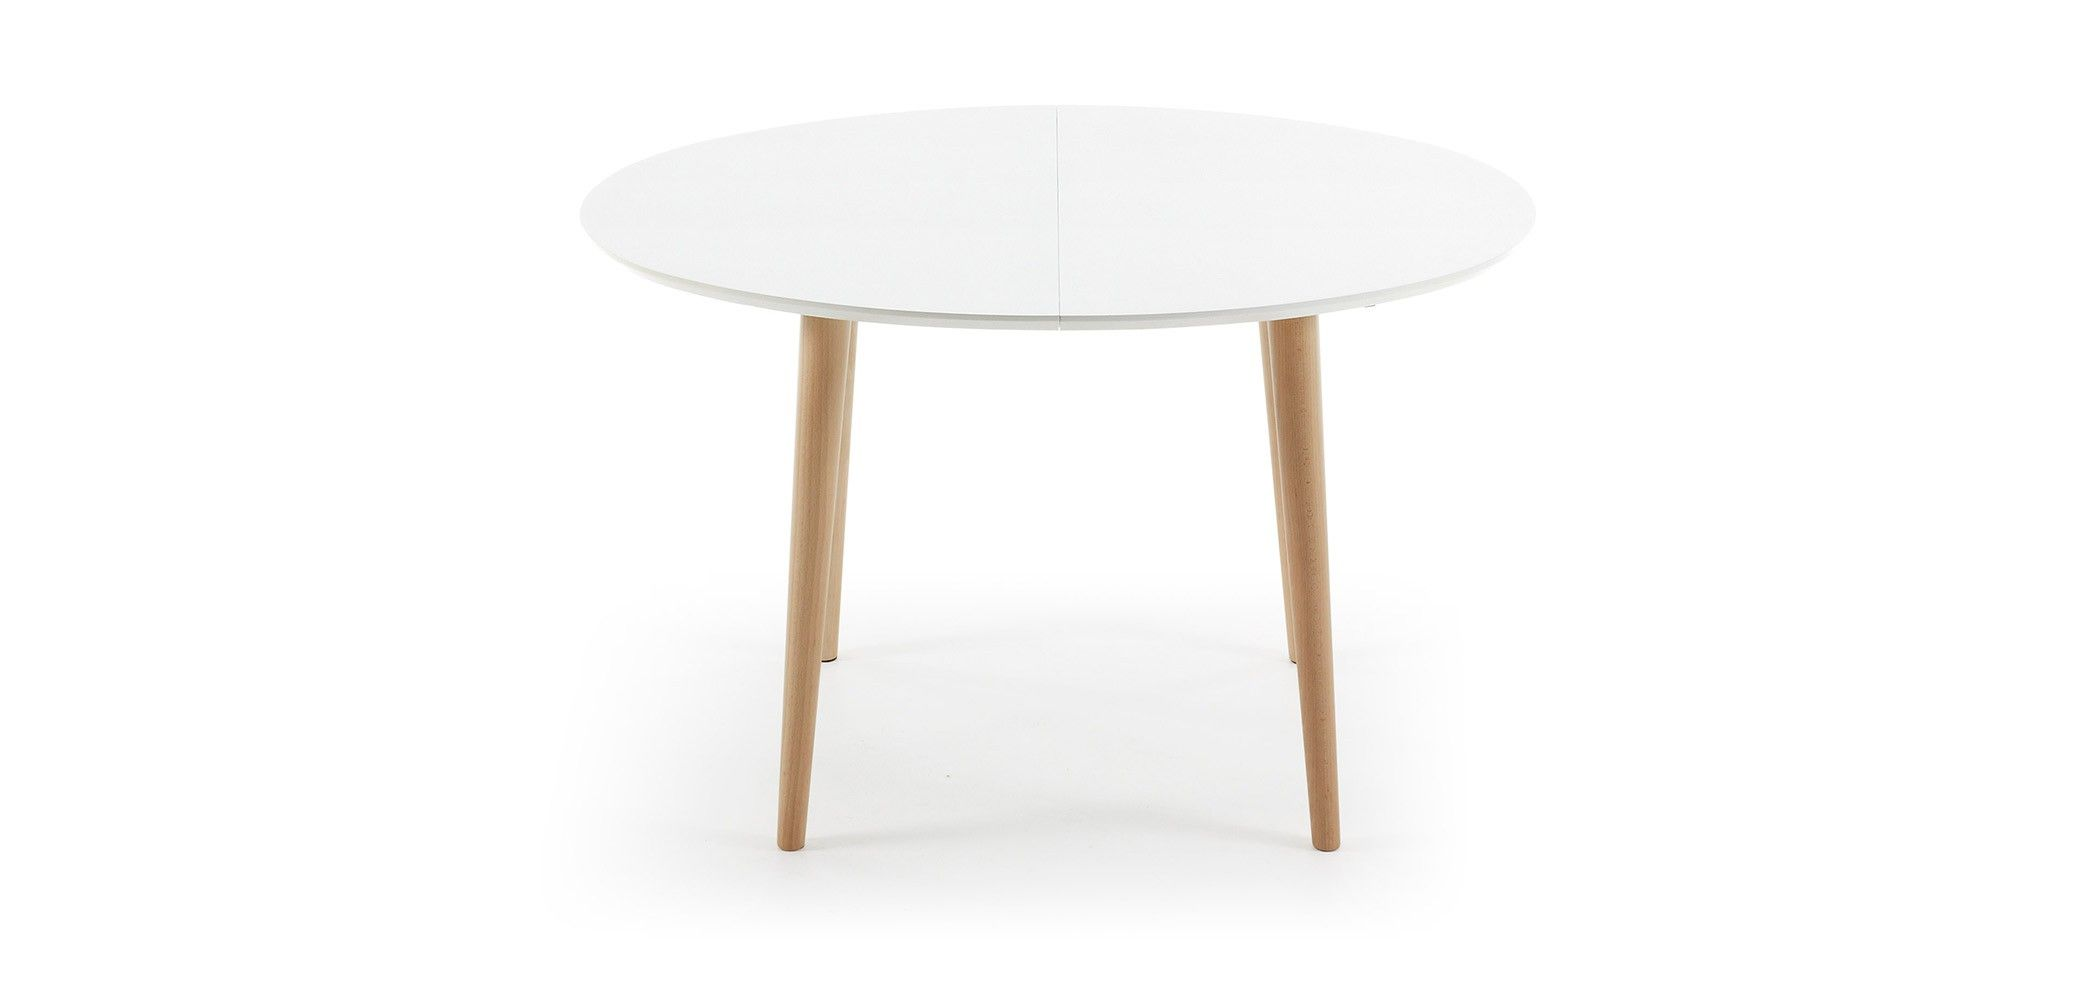 Table oqui extensible ovale 120 200 cm naturel et blanc for Table ovale extensible